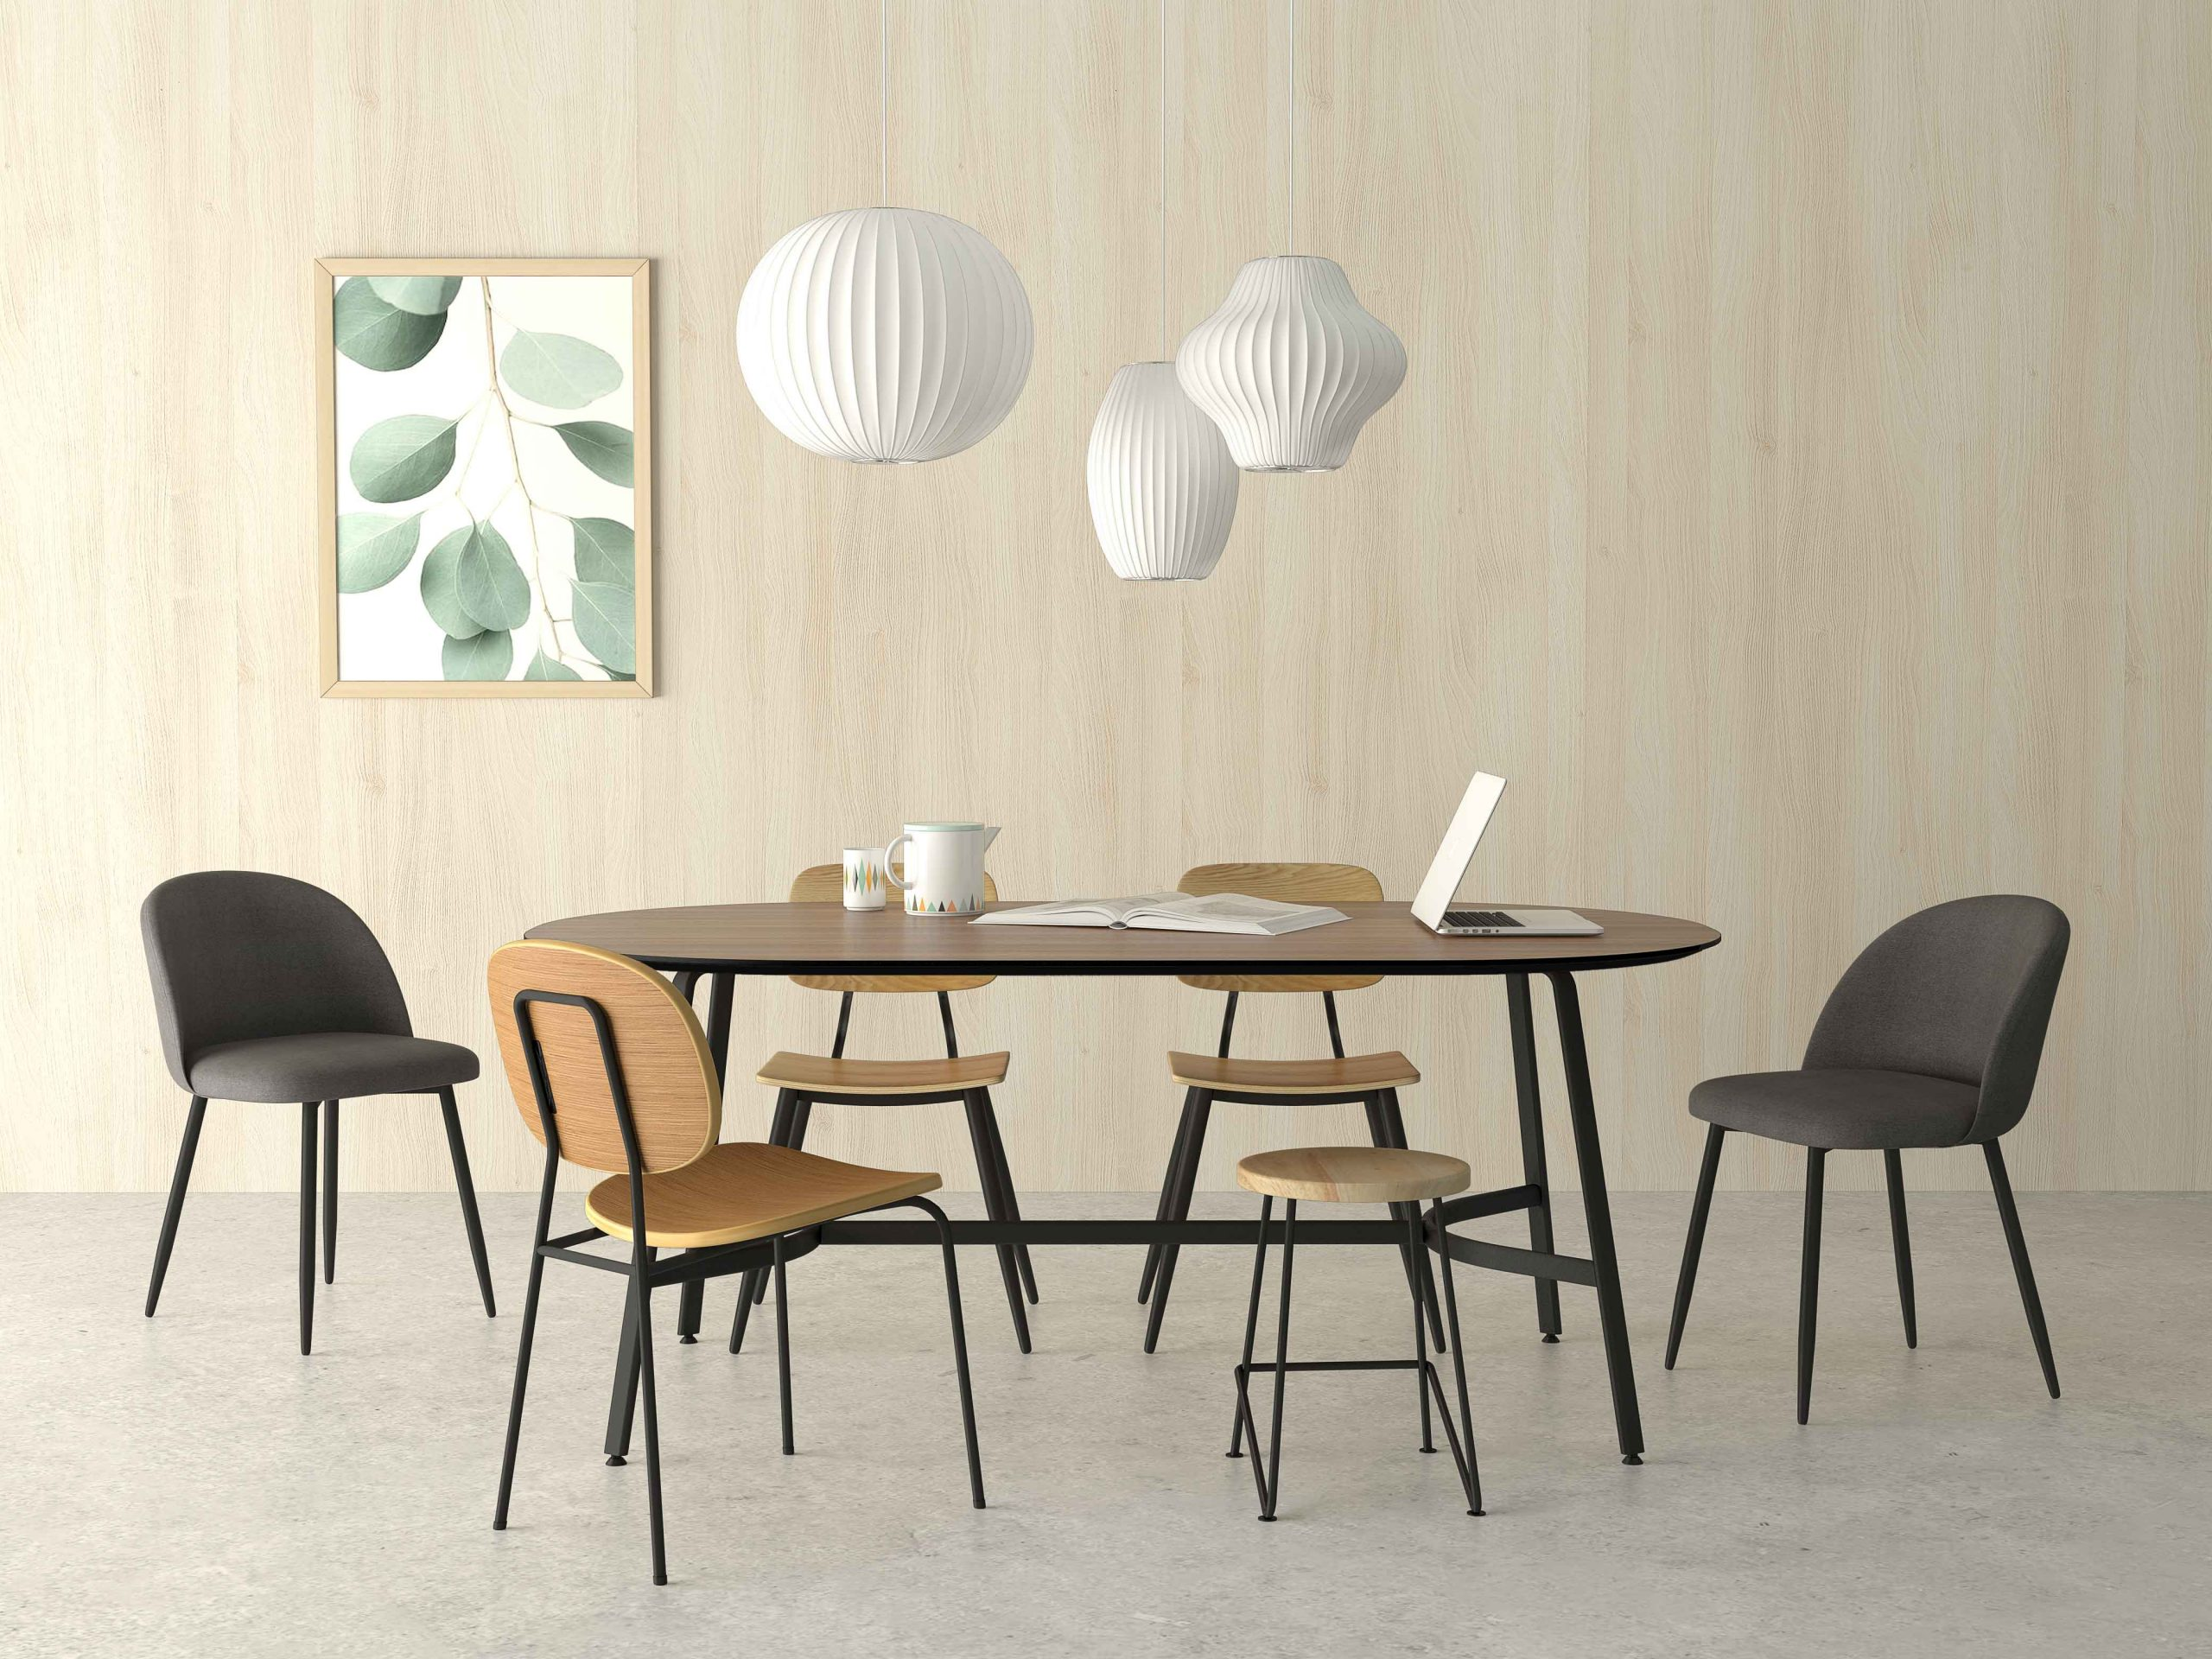 Scandi | Matic Degree Office Furniture Malaysia